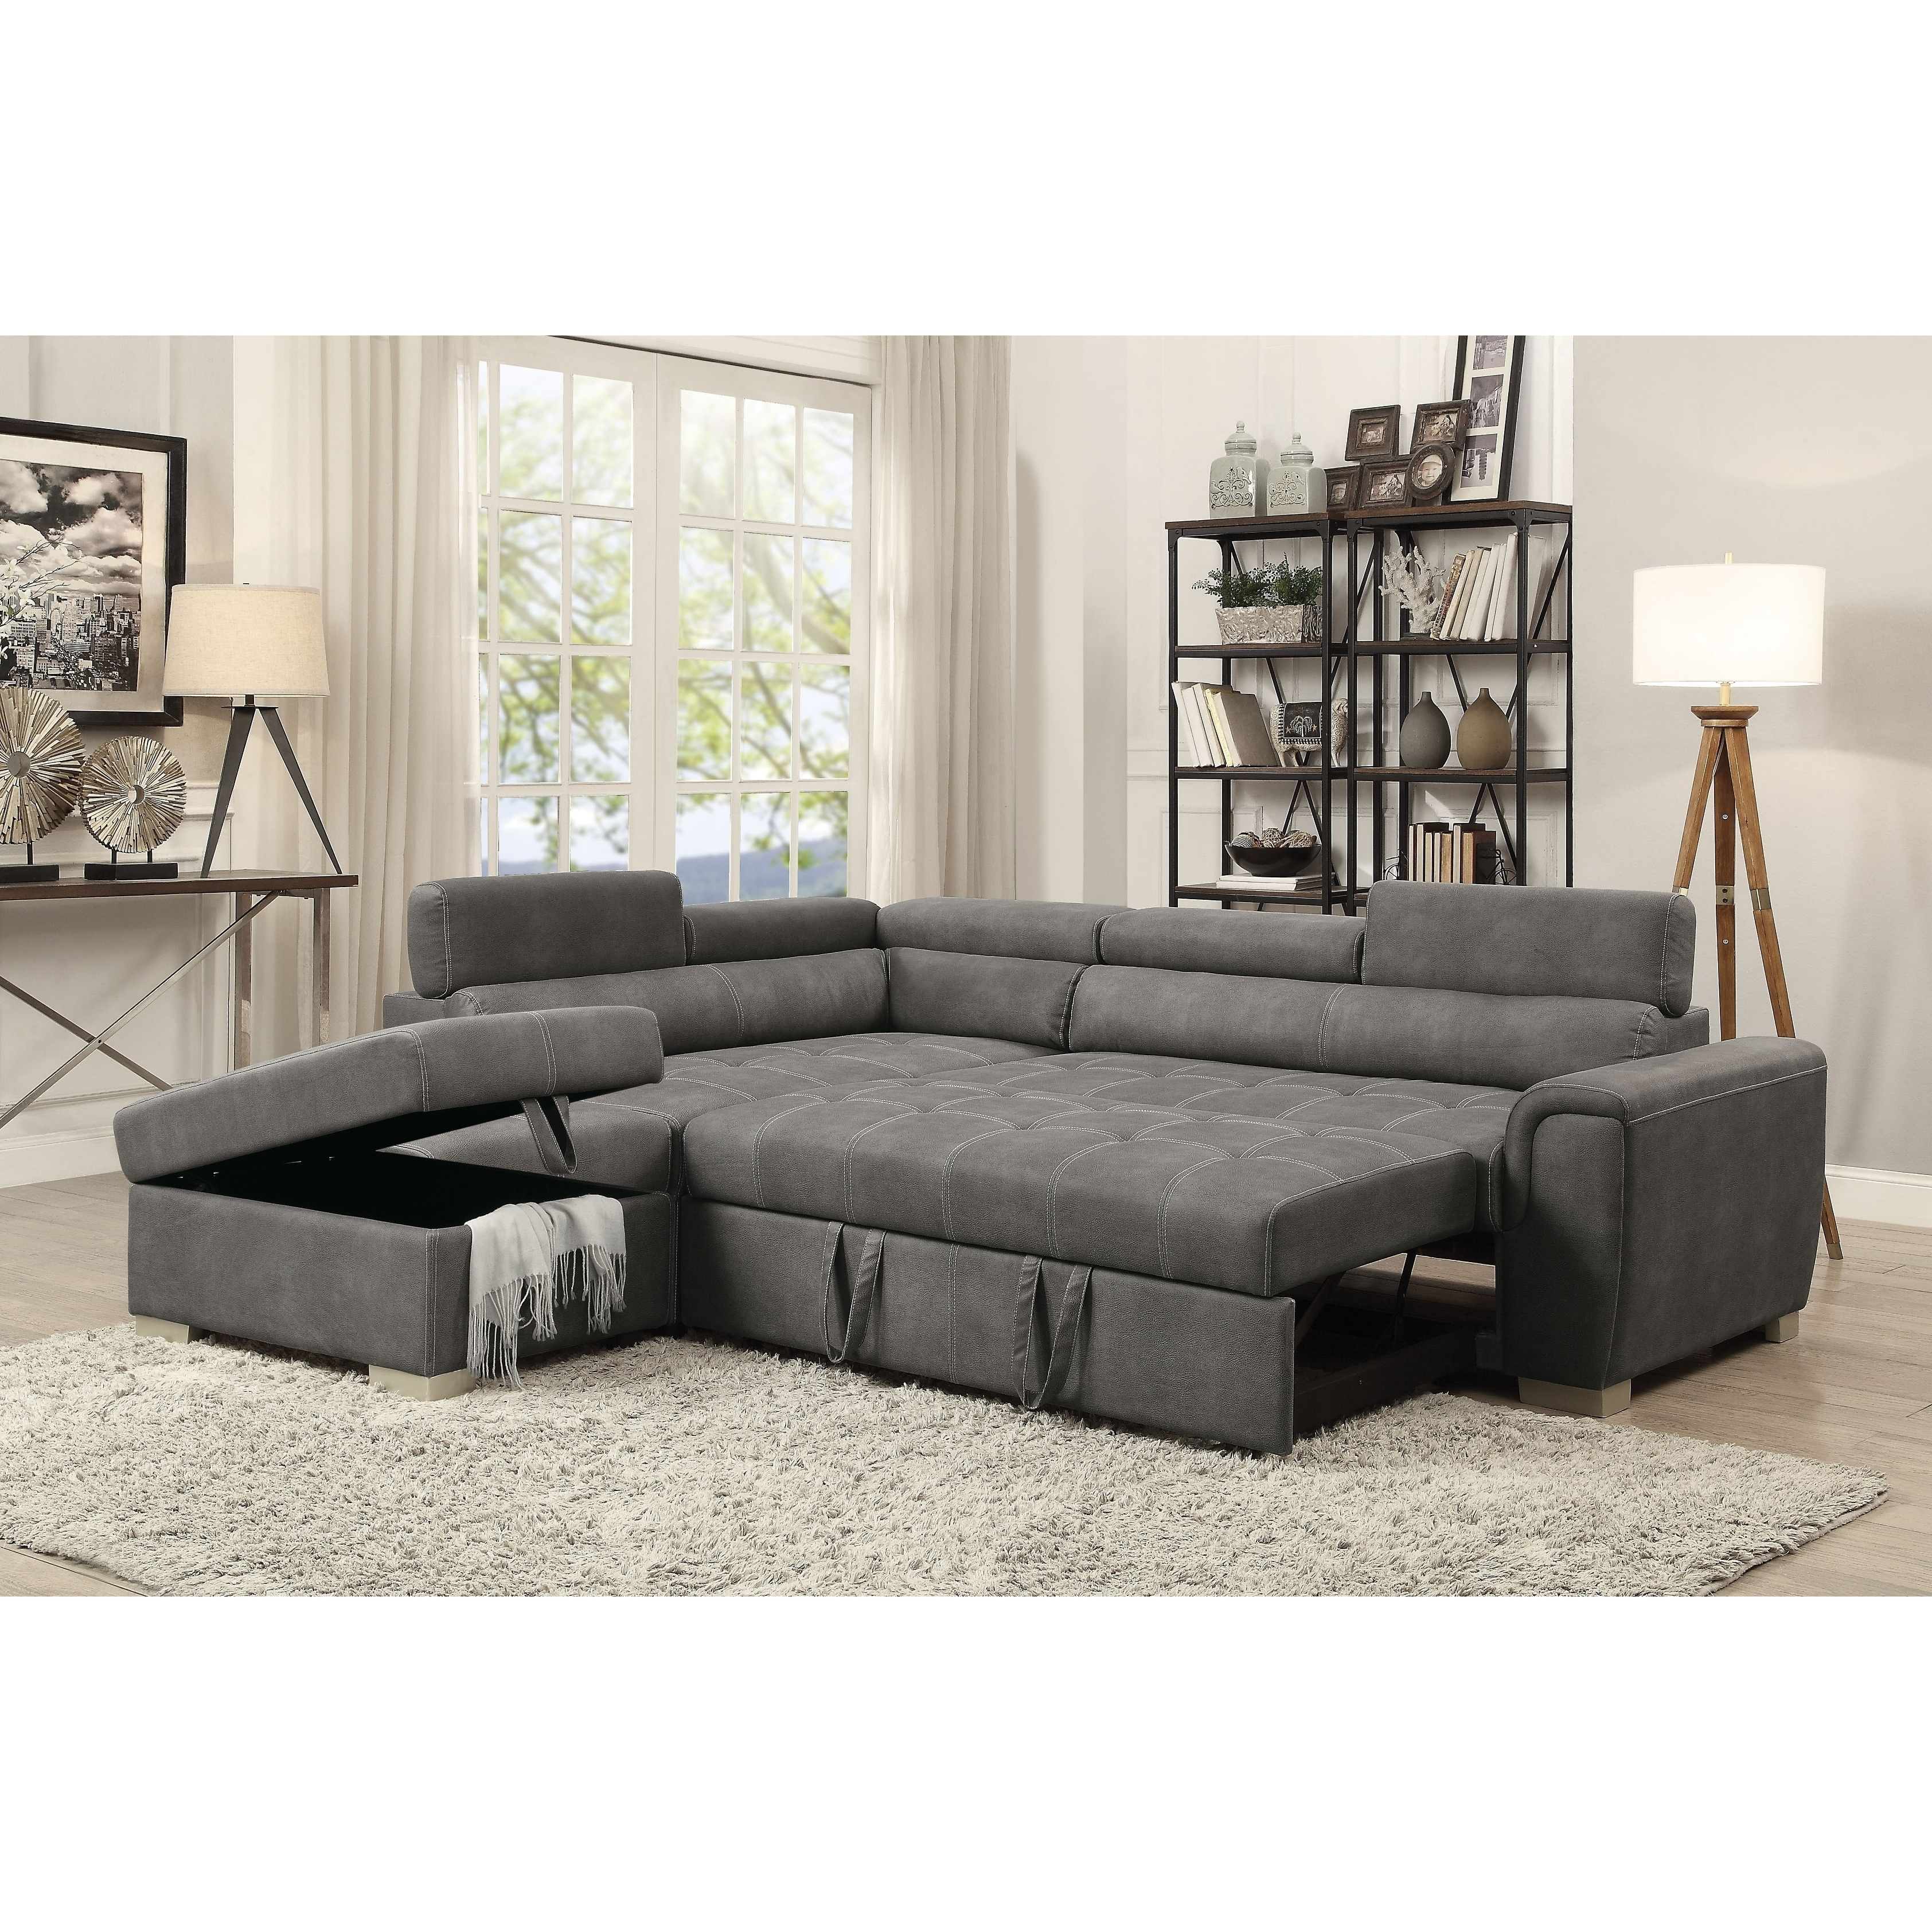 Sofas With Chaise And Ottoman Within Latest Acme Thelma Grey Microfiber L Shaped Sectional Sofa With Sleeper (View 14 of 15)